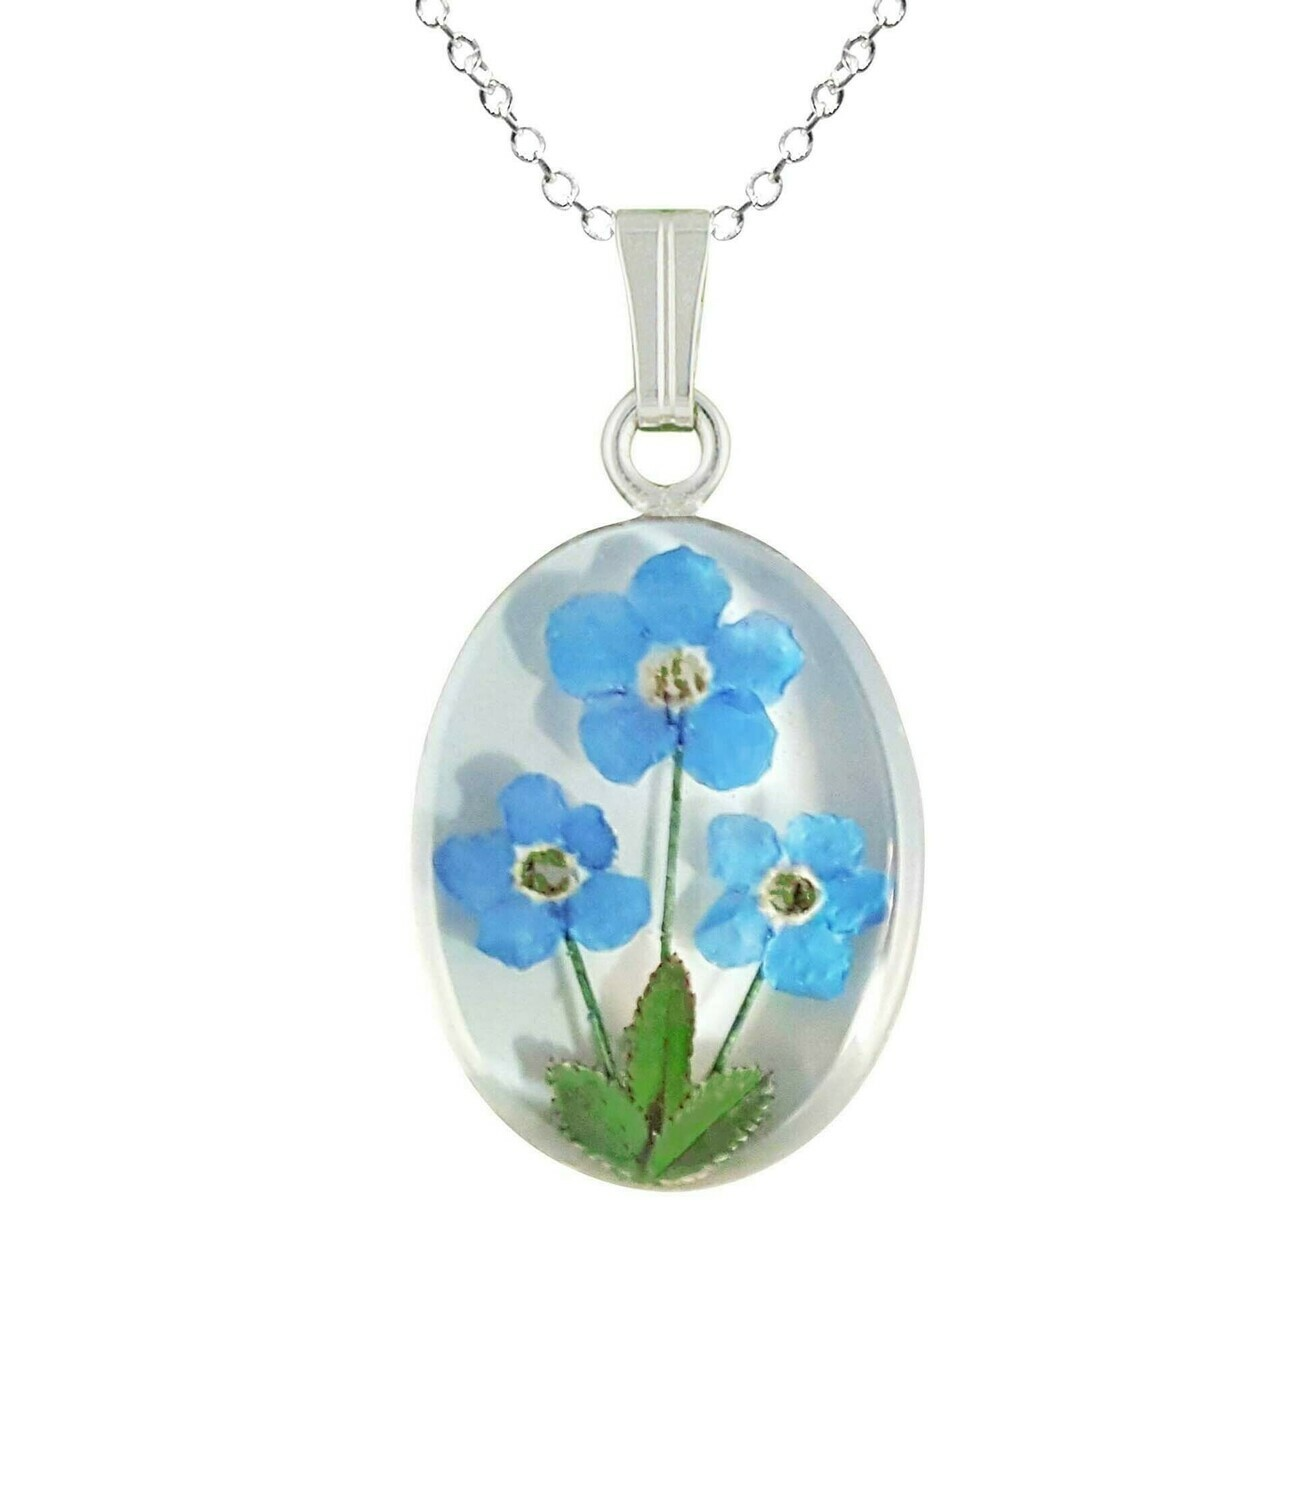 Forget-Me-Not Necklace, Medium Oval, White Background